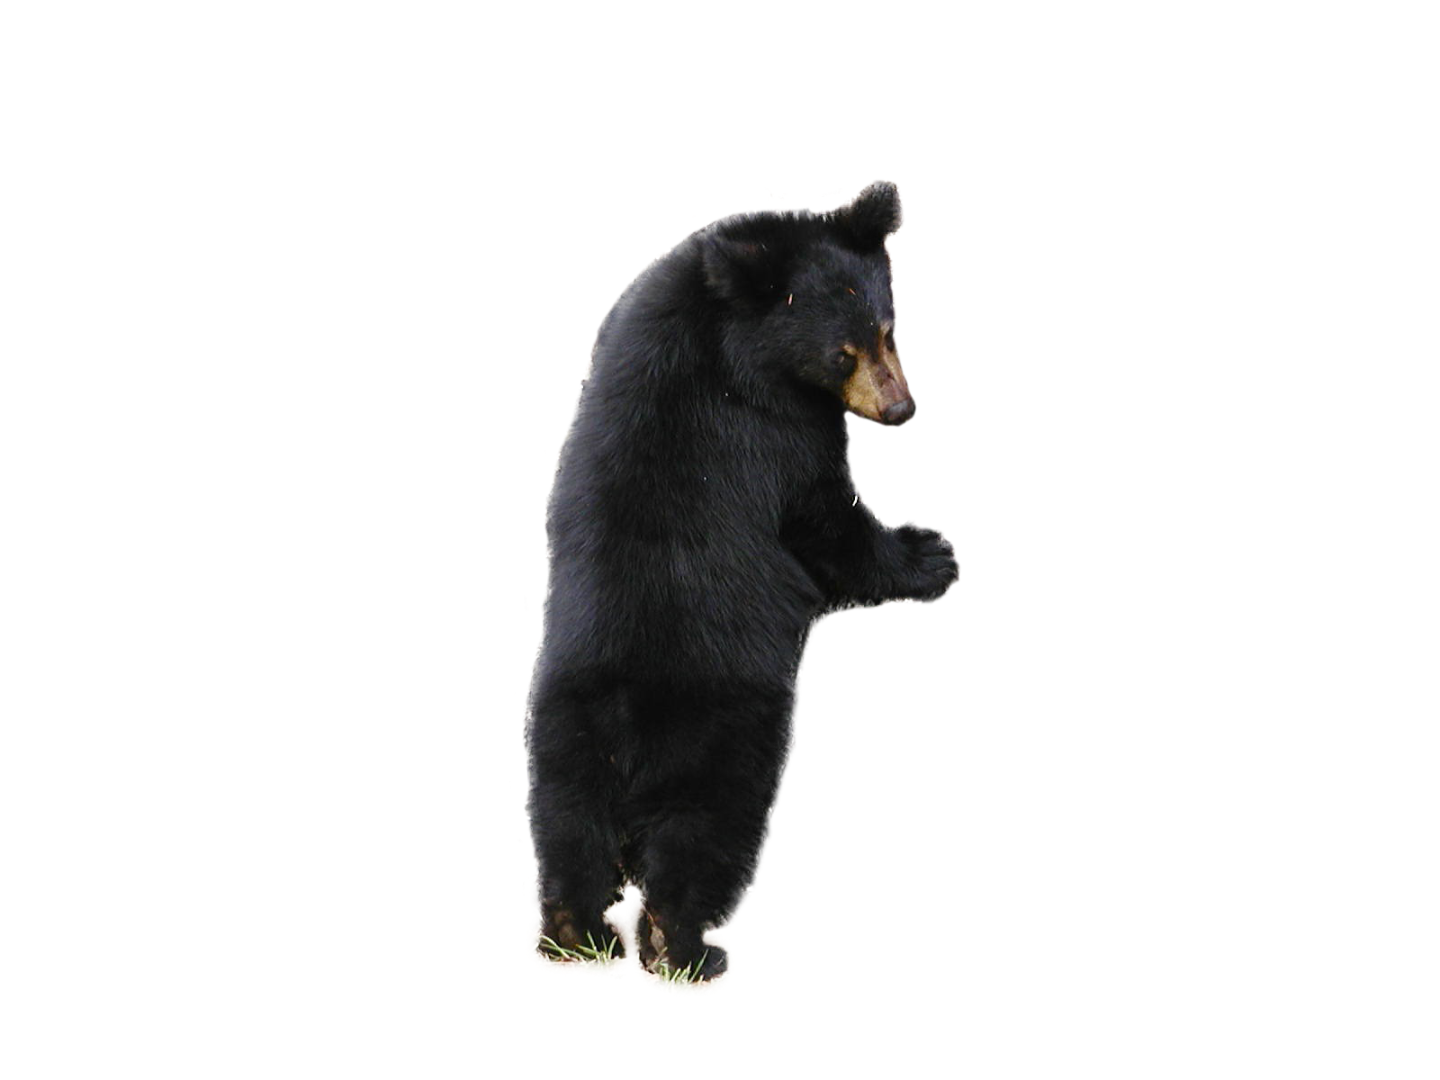 Clipart bear american black bear. Png free images